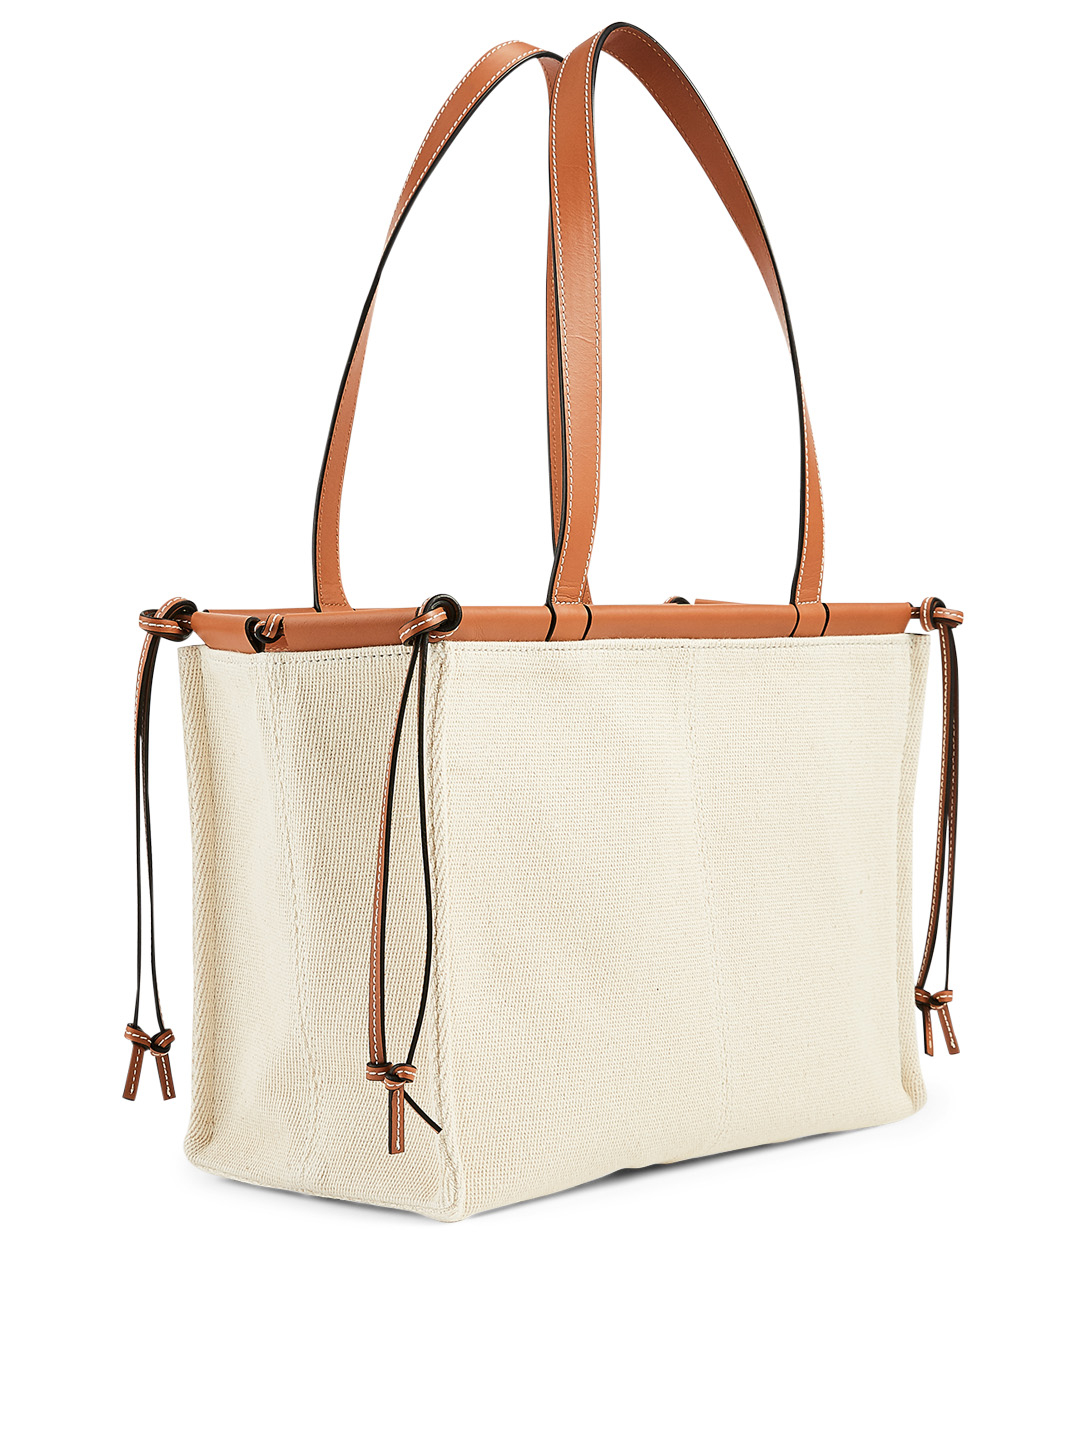 LOEWE Small Cushion Leather Tote Bag Women's Beige